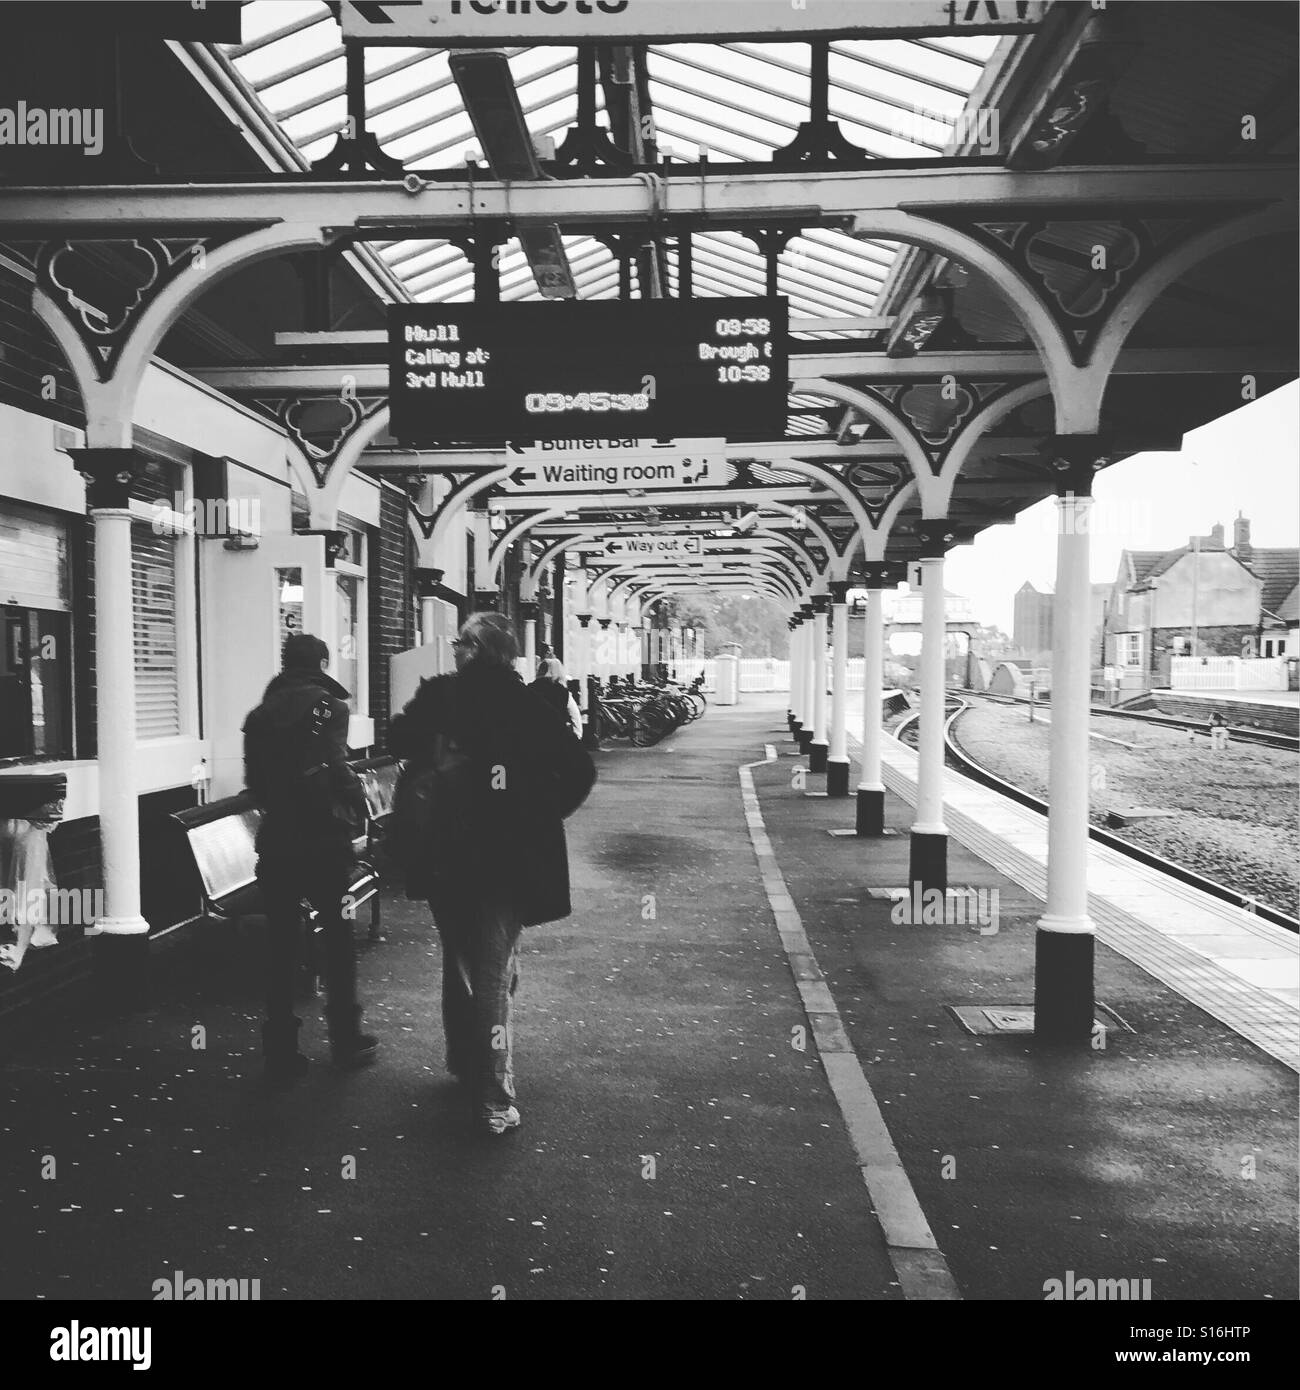 Selby railway station, Yorkshire. - Stock Image